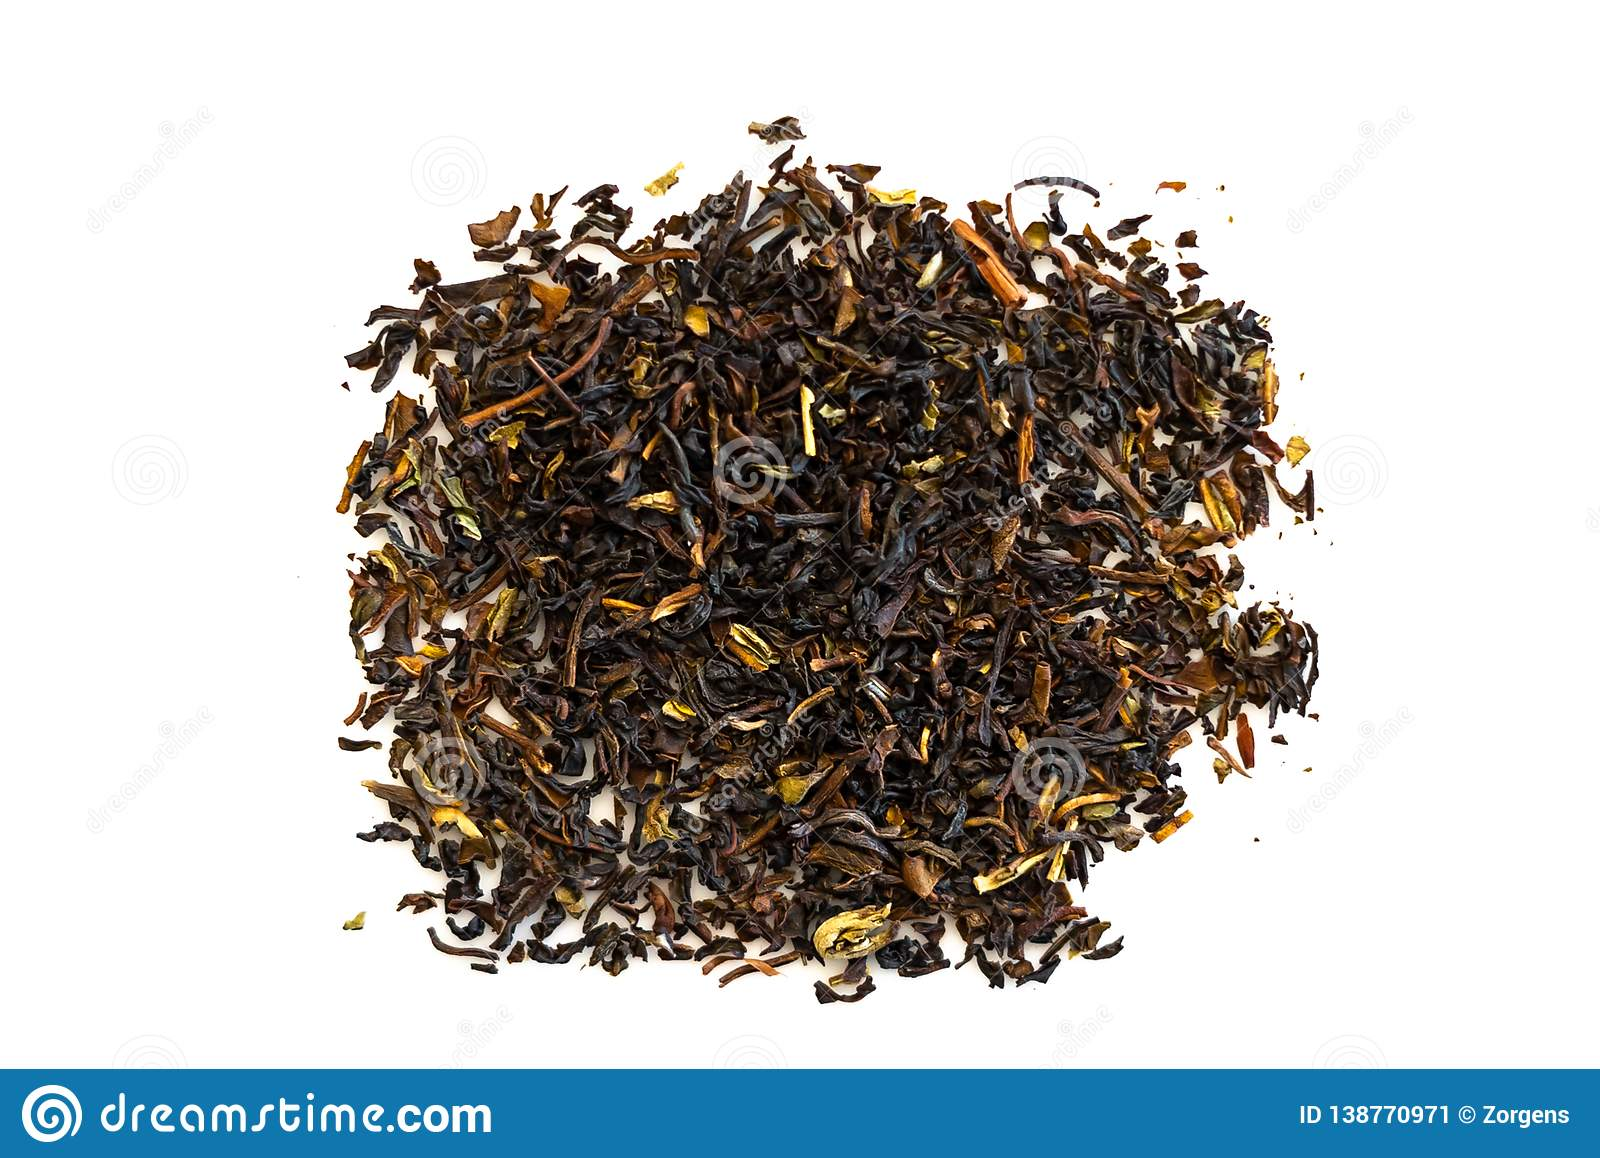 Black tea loose dried tea leaves, isolated on the white background